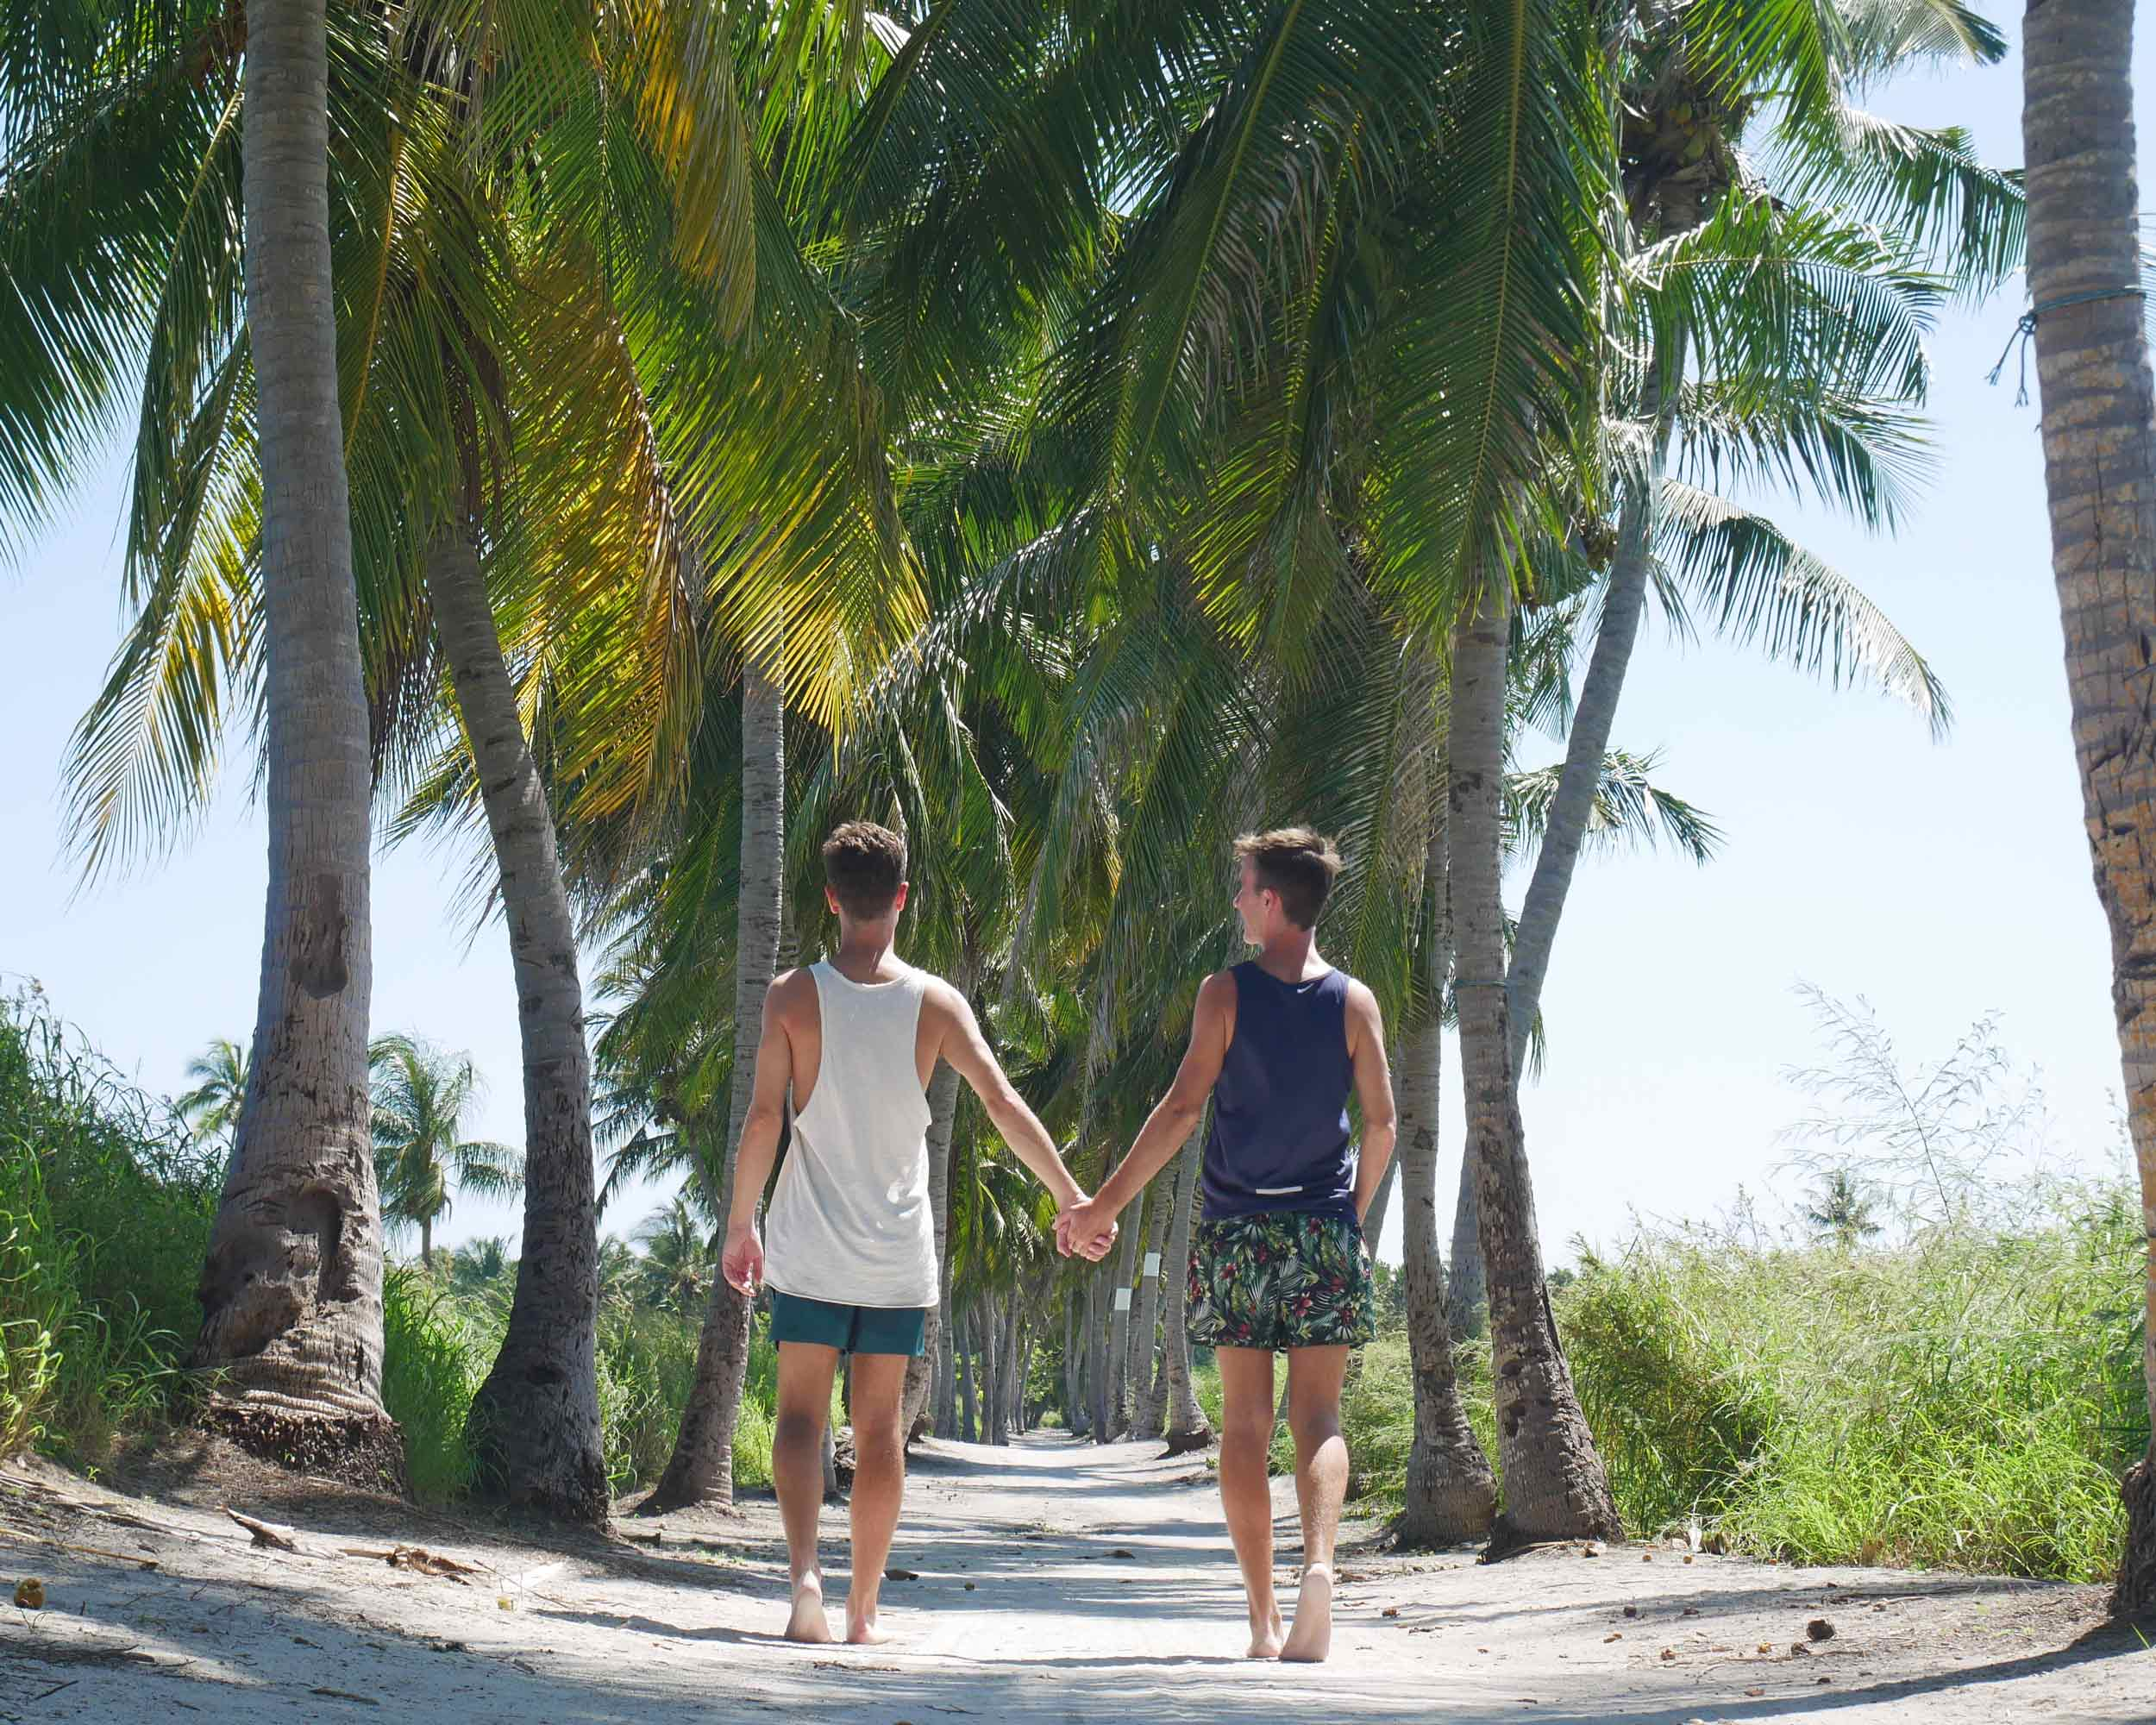 On our final evening walking along our favorite sandy, palm-lined lane, Trey asked Martin if he'd like to walk side-by-side in the journey of life, forever.Yes!